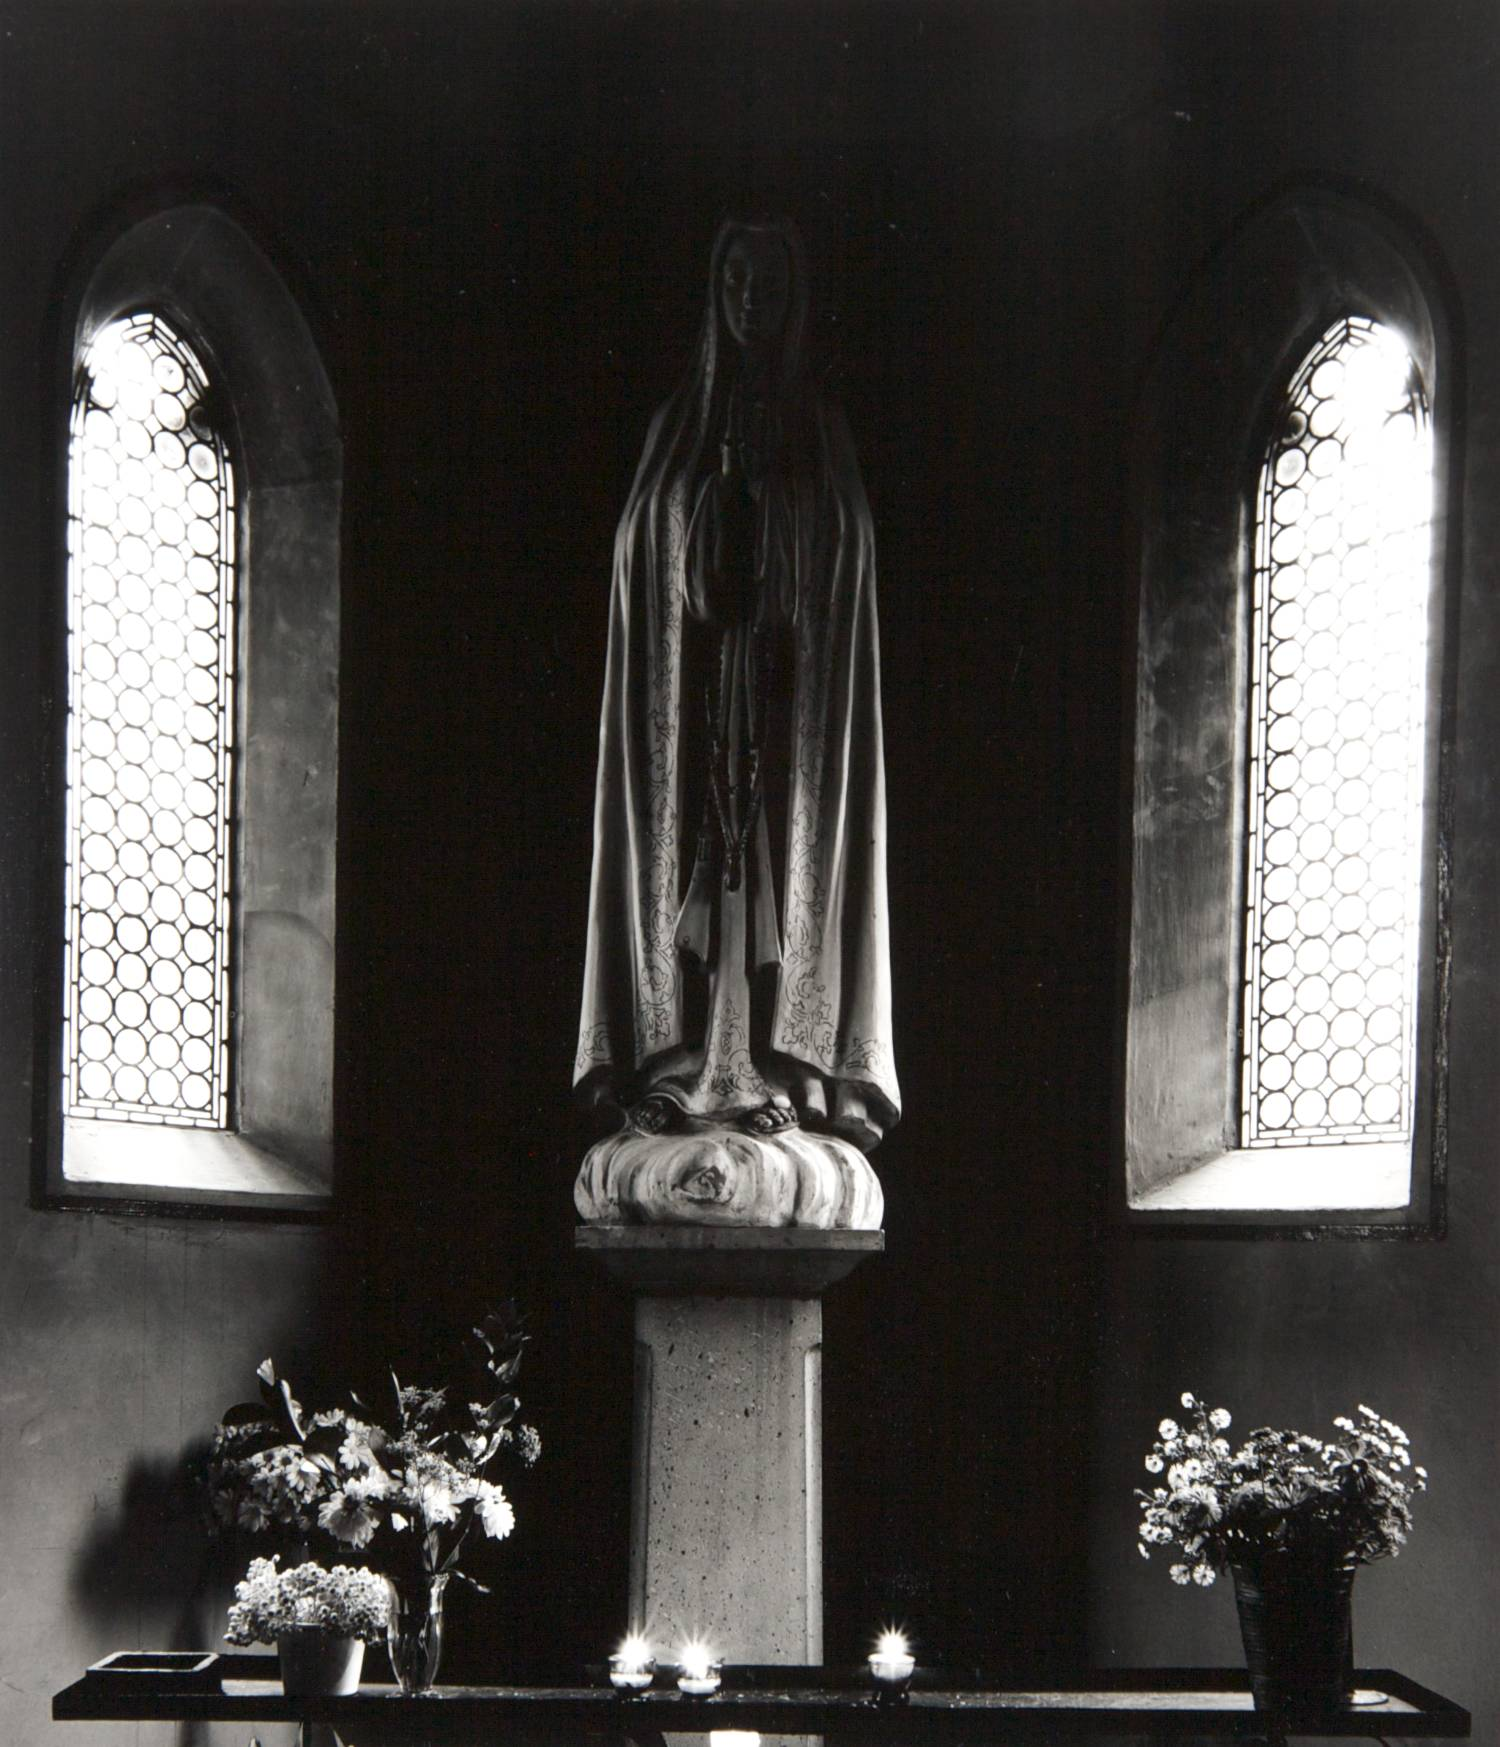 Mary in Oberwesel (Germany)